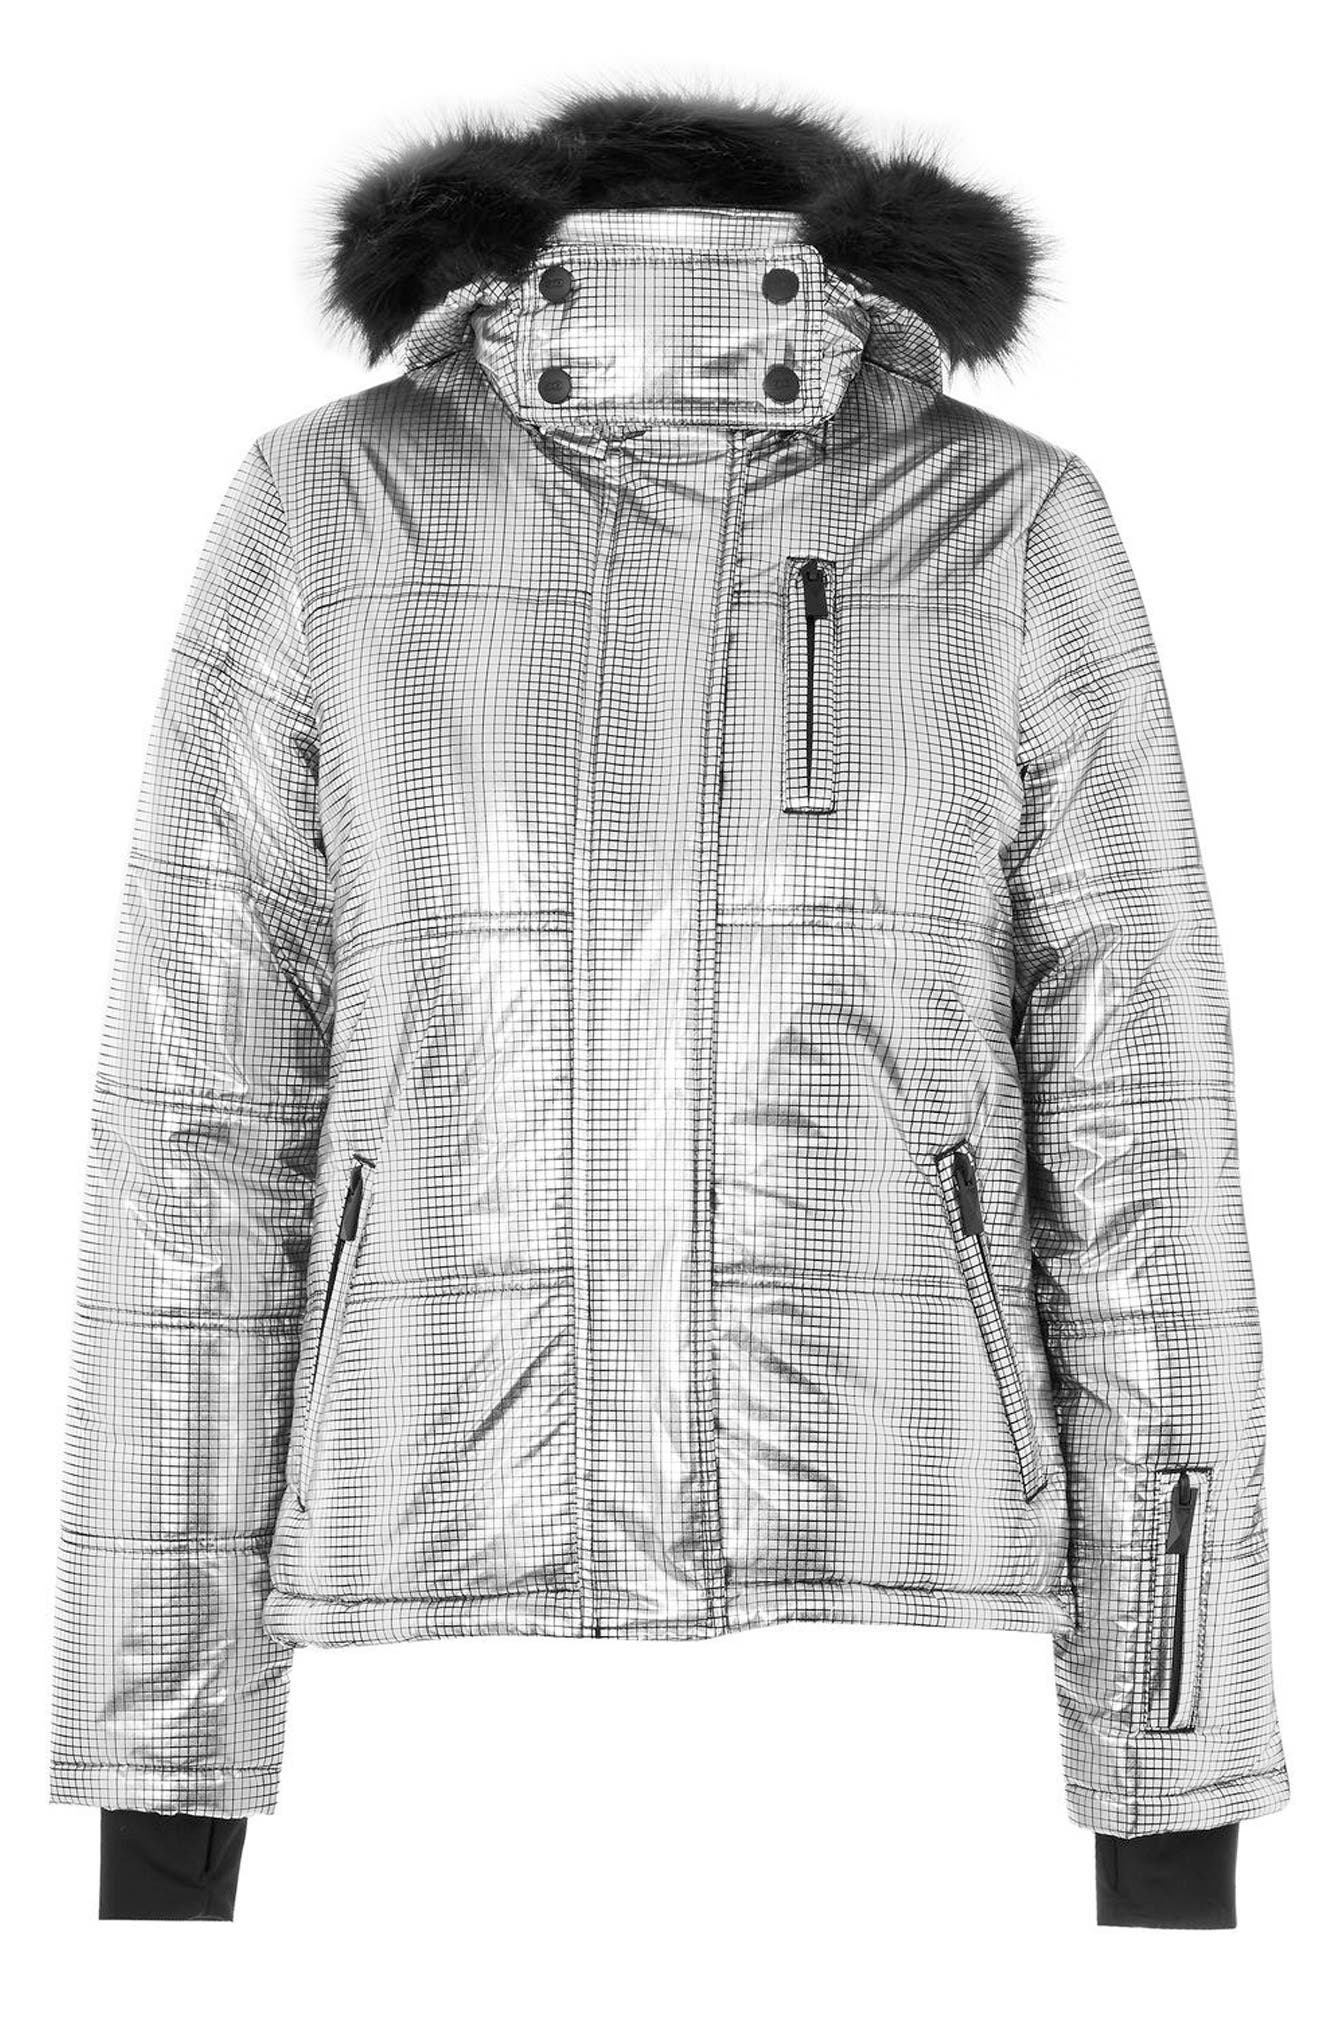 SNO Rio Faux Fur Hood Metallic Puffer Jacket,                             Alternate thumbnail 4, color,                             040